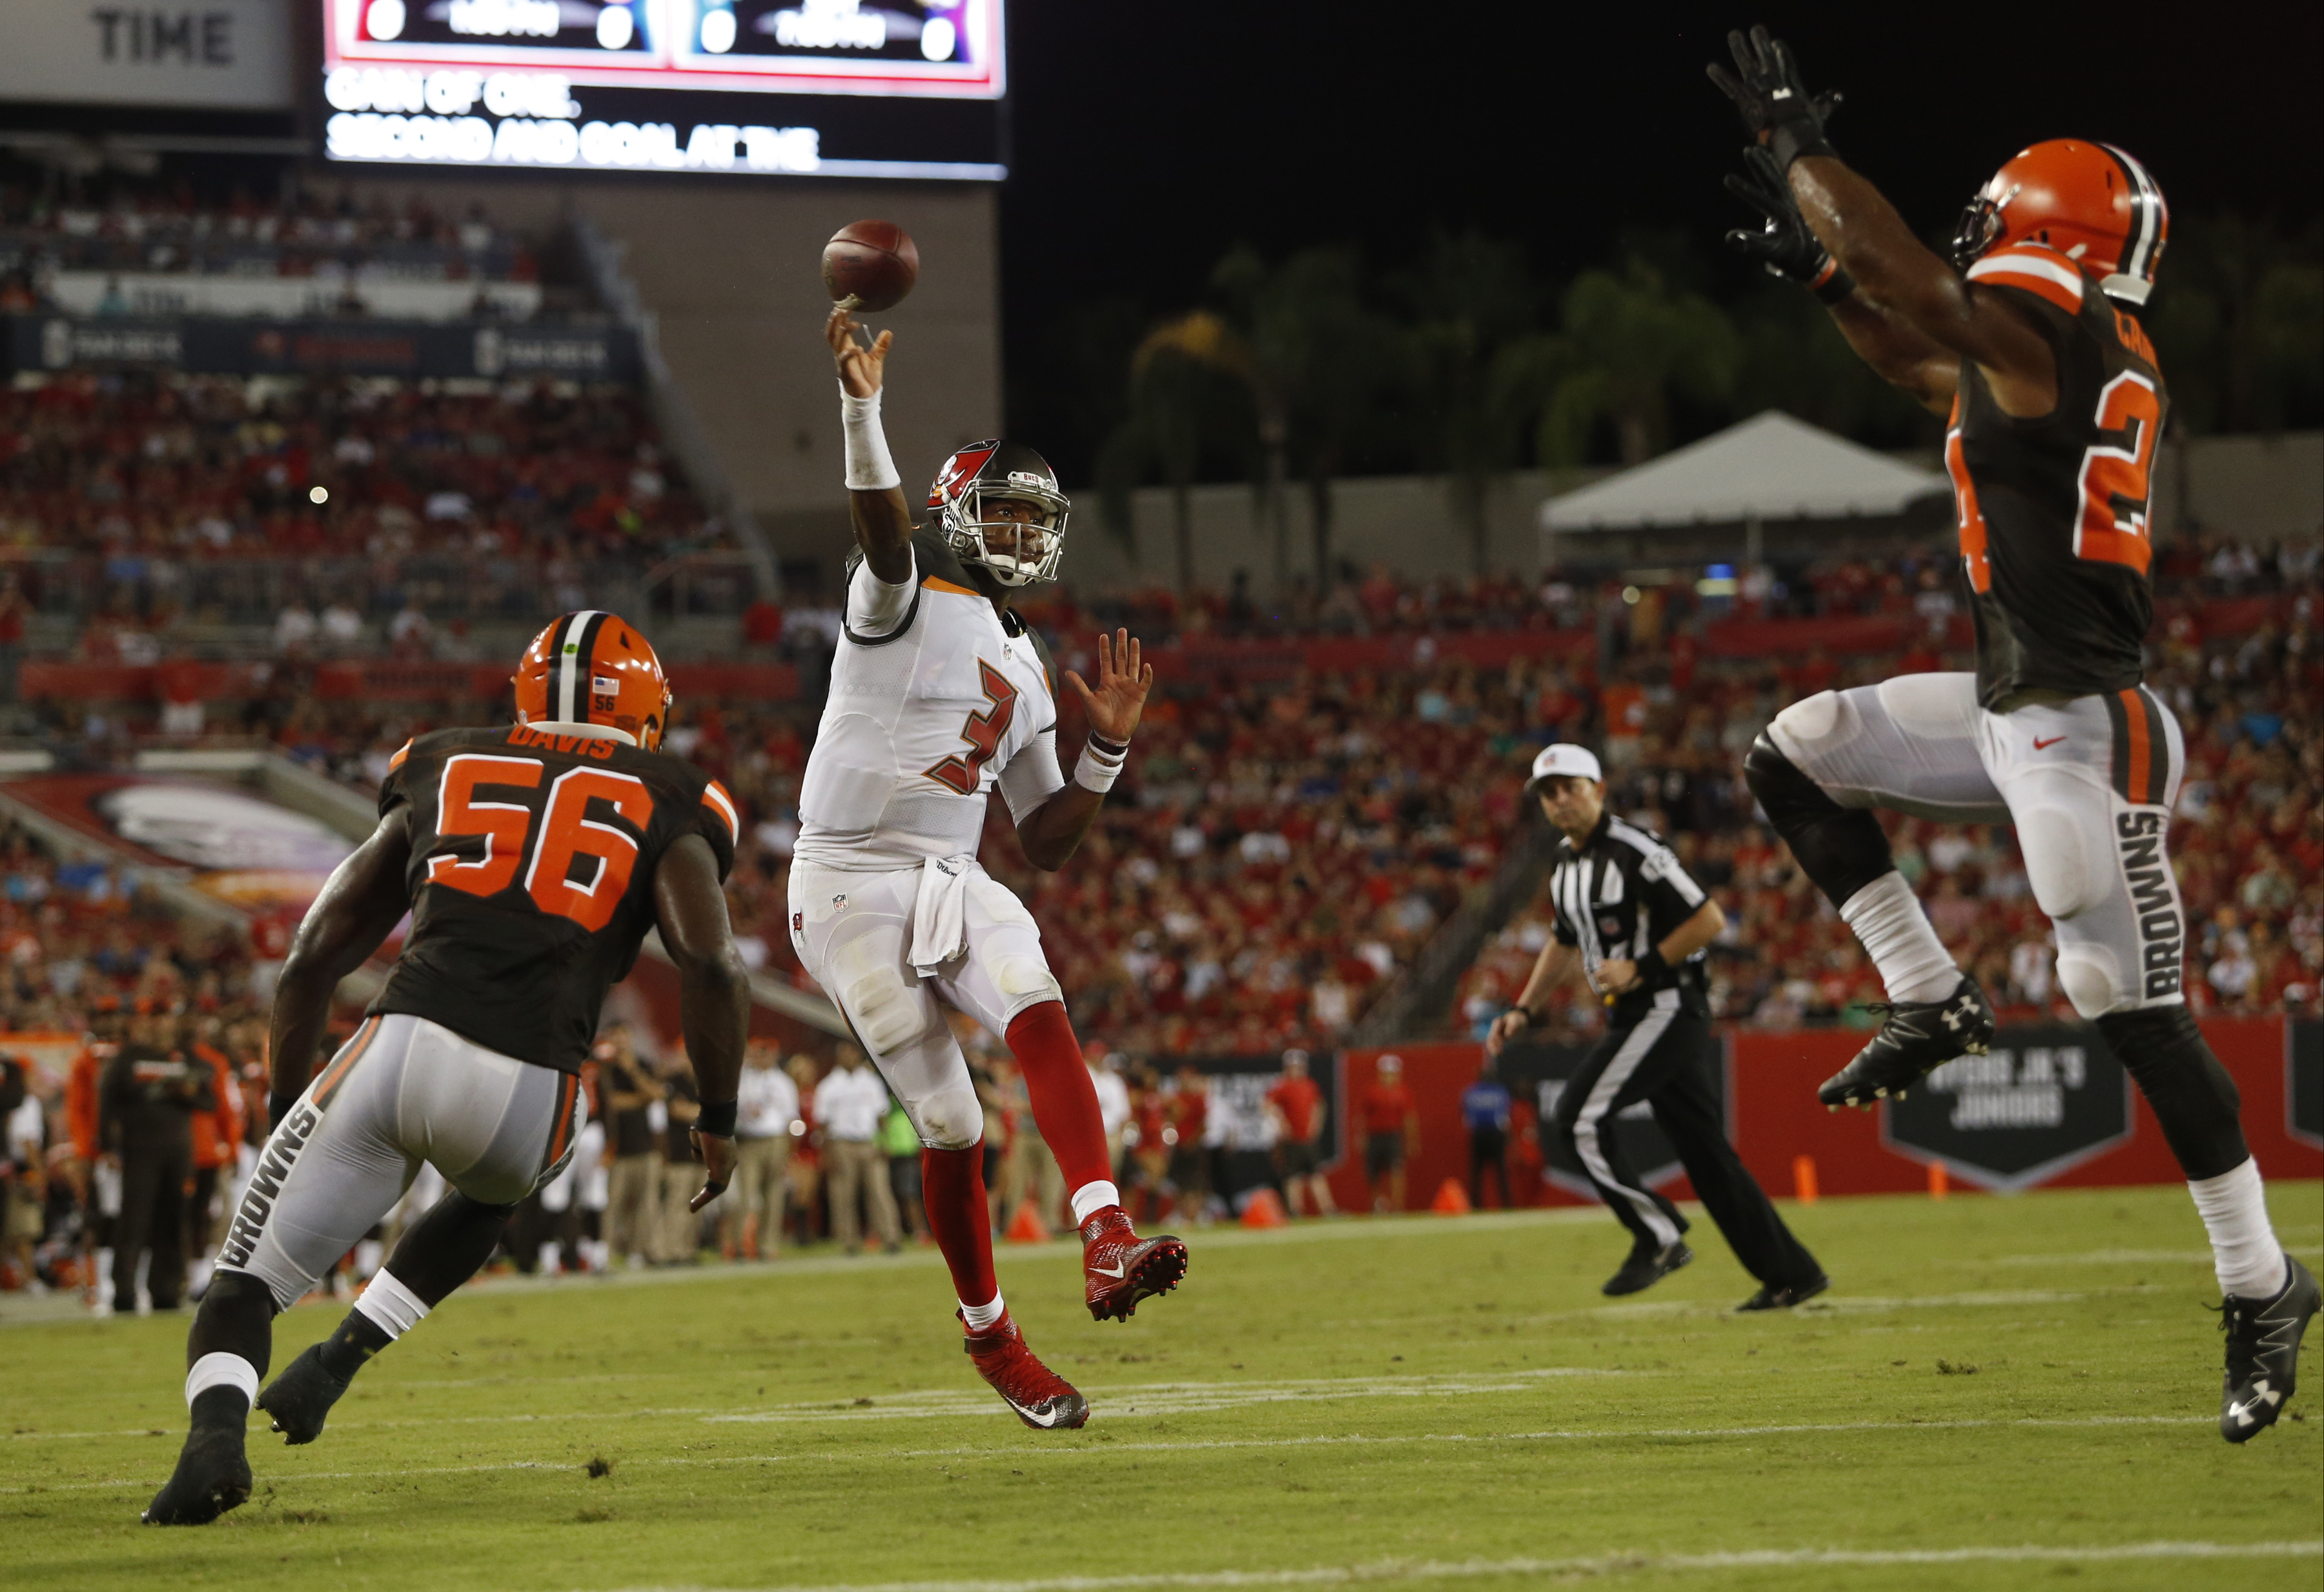 Tampa Bay Buccaneers 13-9 preseason loss to the Cleveland Browns